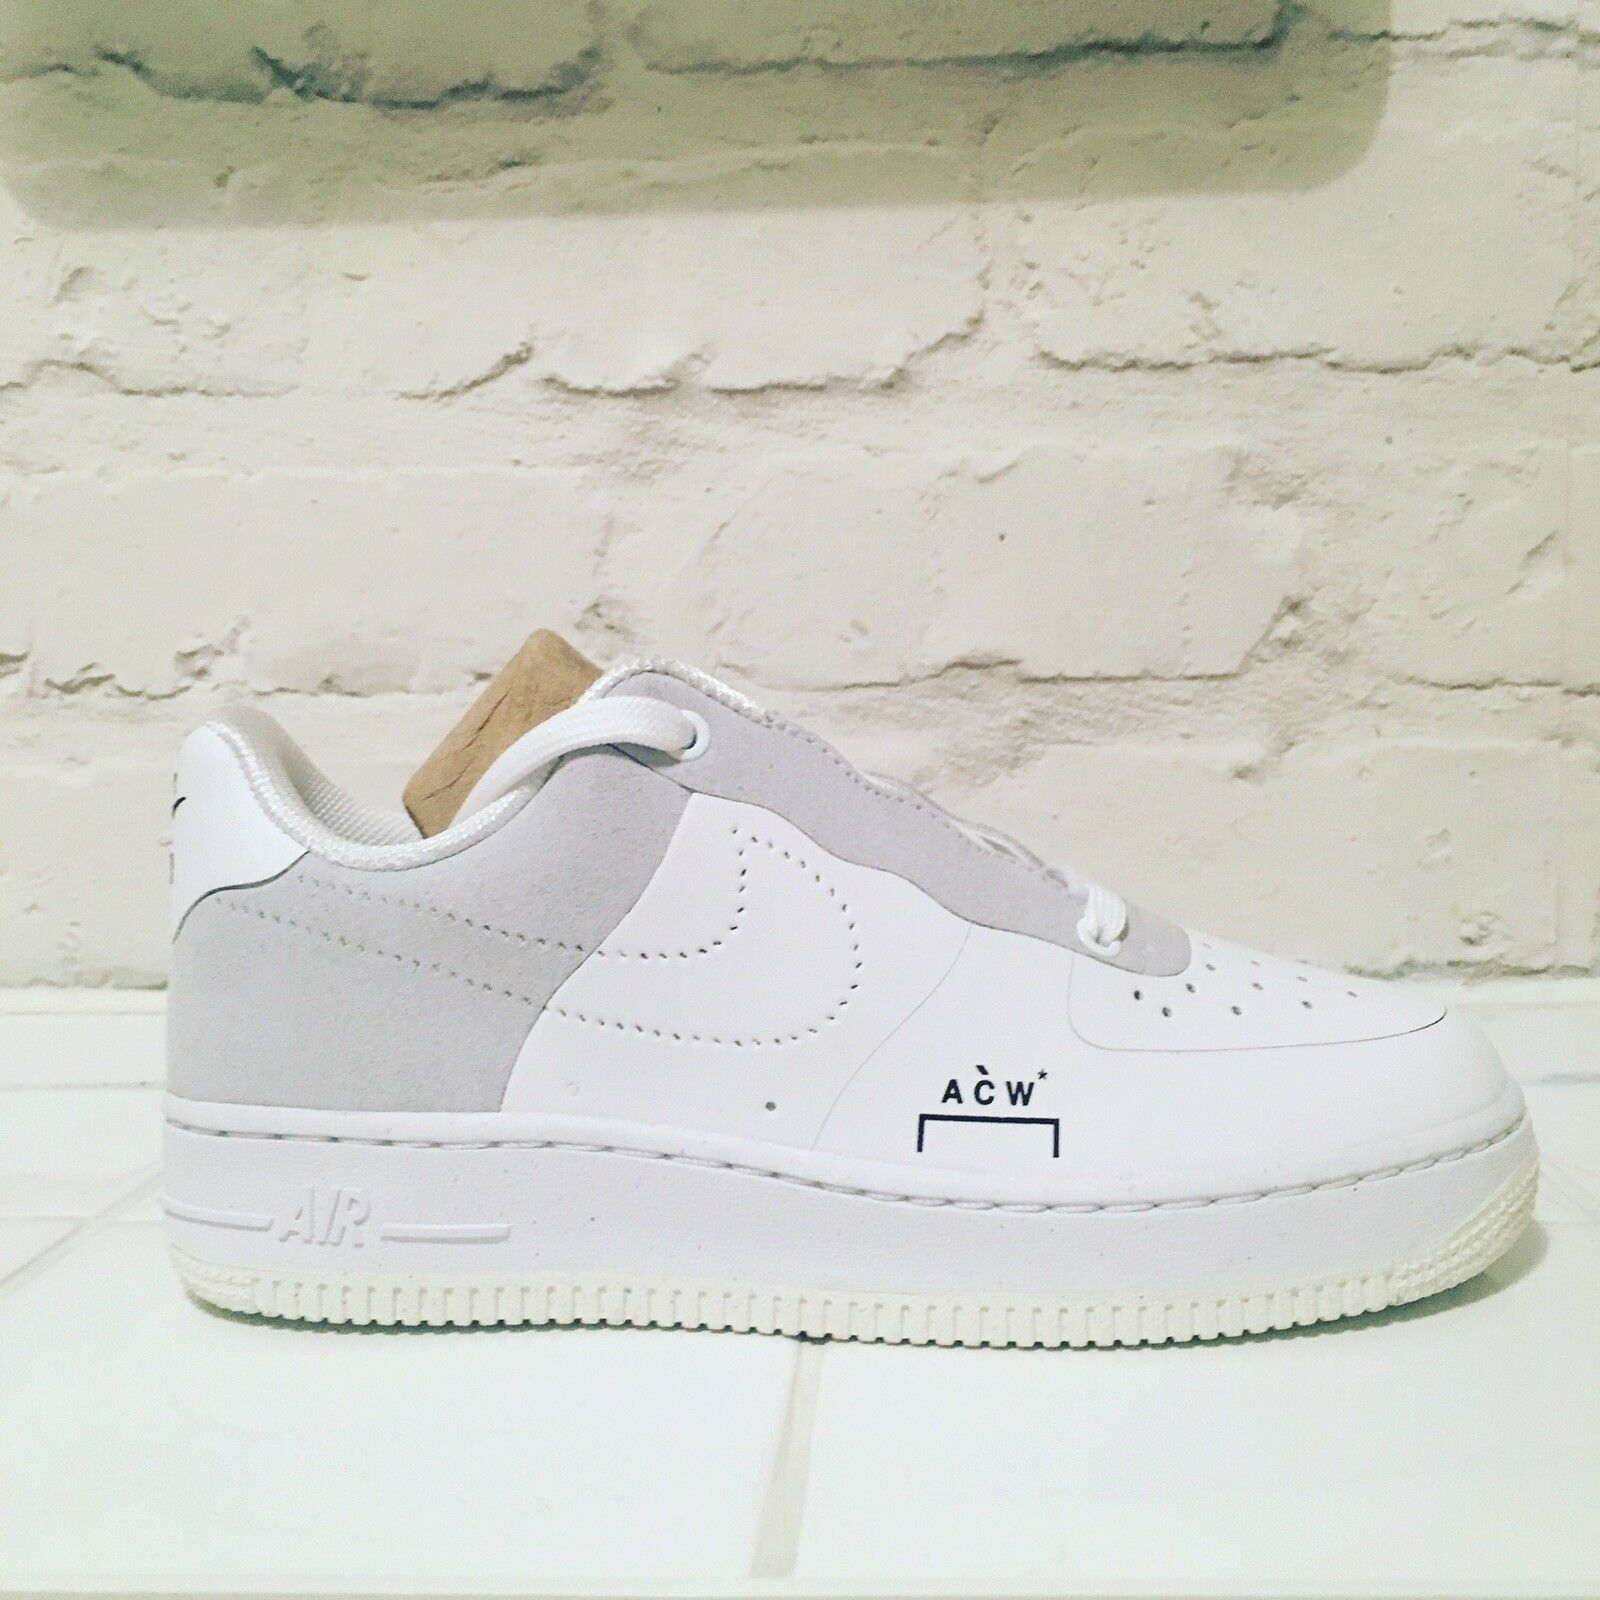 Nike Air Force 1 x A Cold Wall (ACW) - White (UK4)